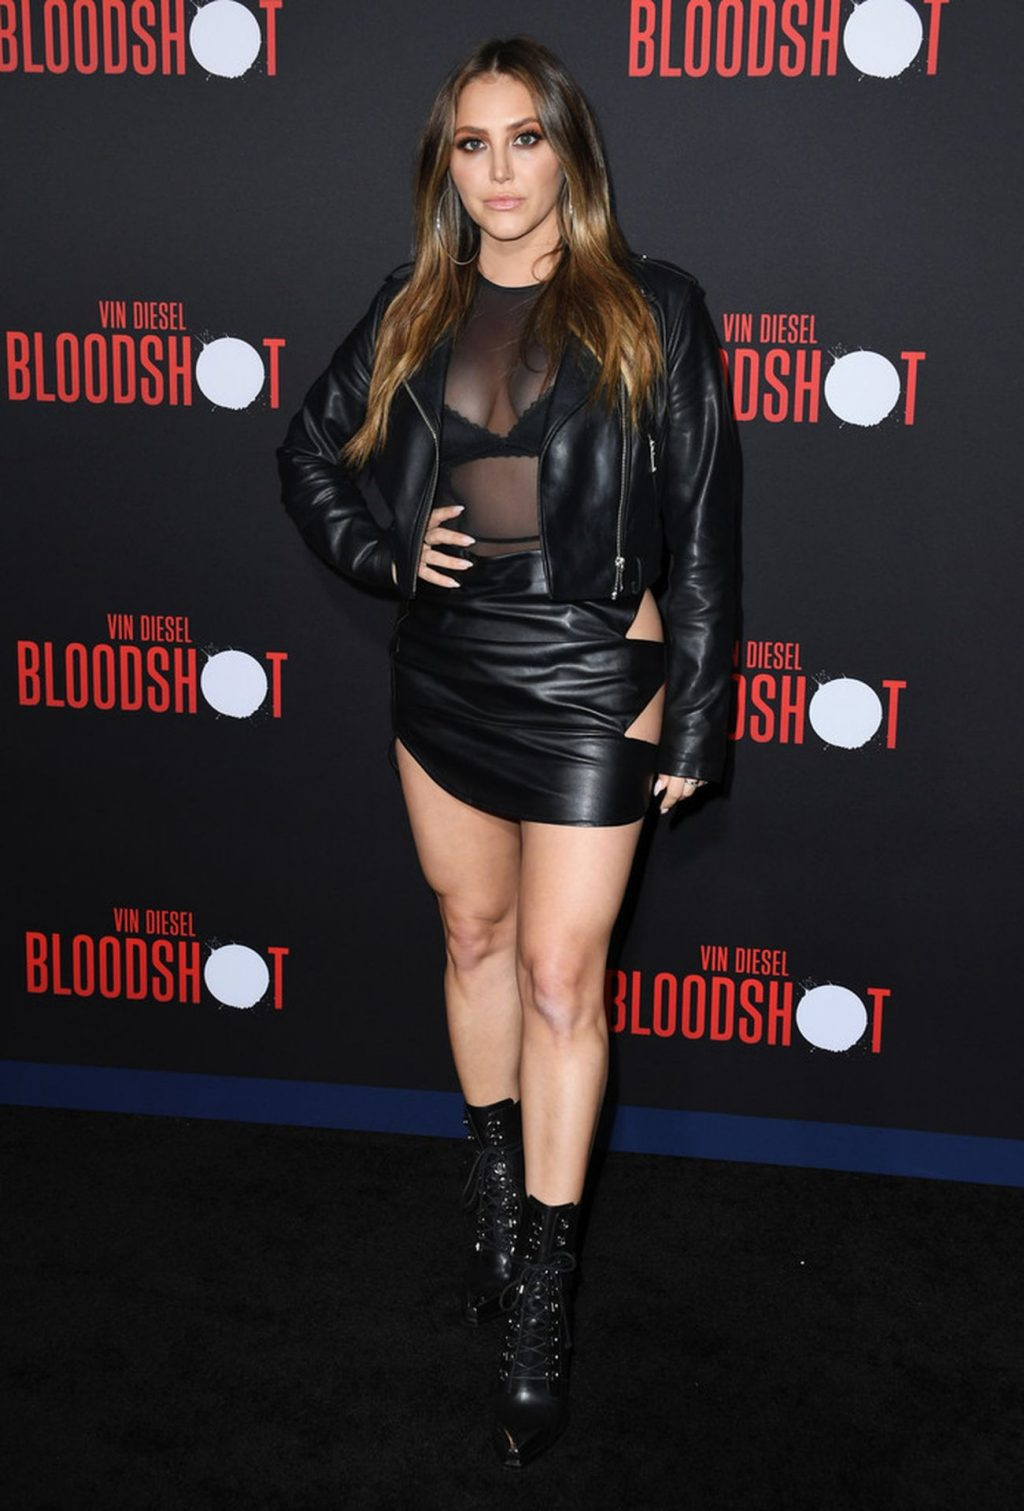 Cassie Scerbo Flaunts Her Legs and Tits at the Bloodshot Premiere in LA (10 Photos)